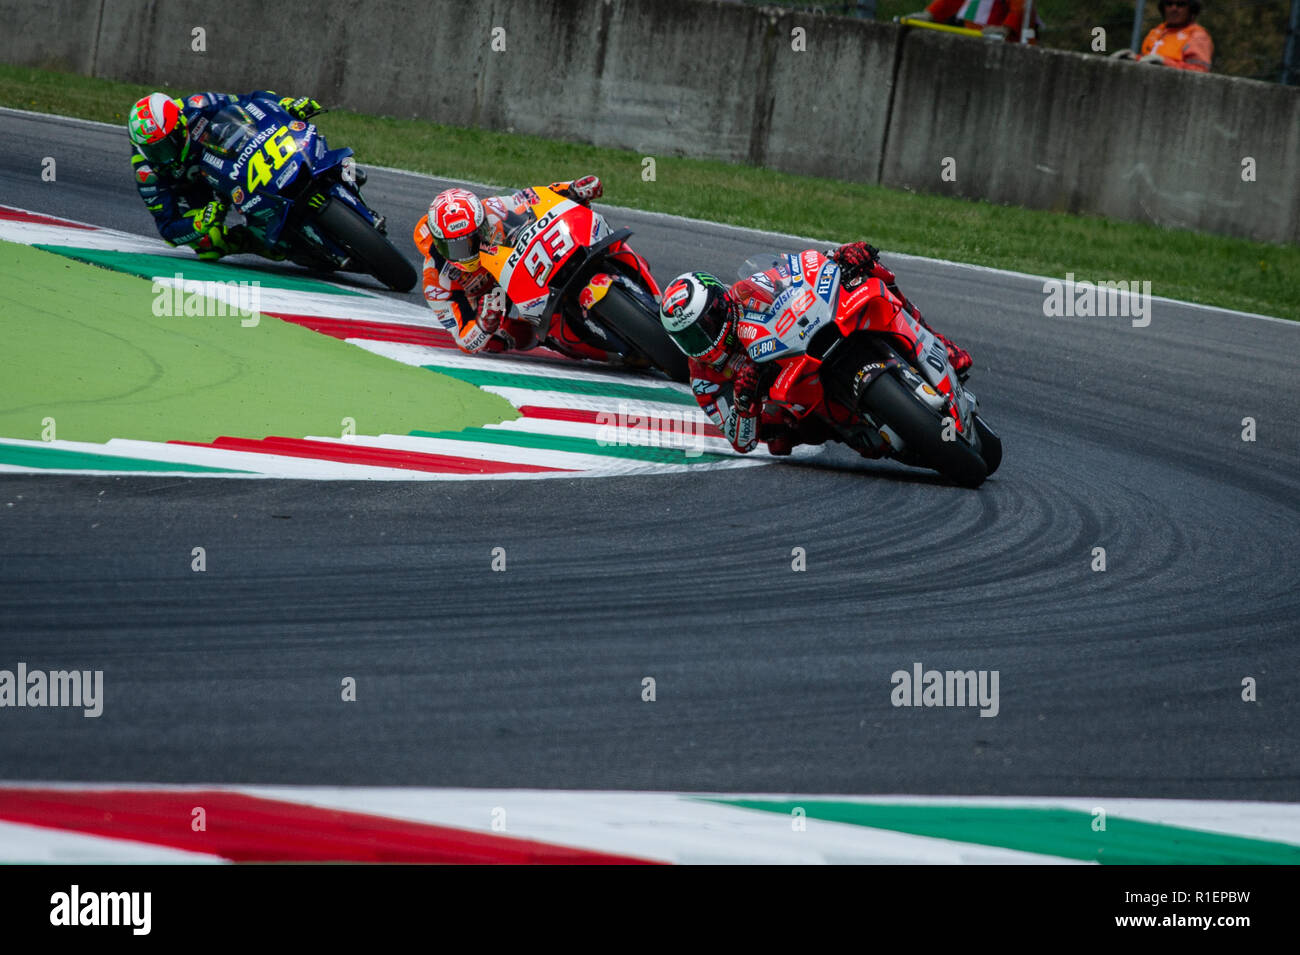 During the Friday free practices in Mugello Circuit Stock Photo